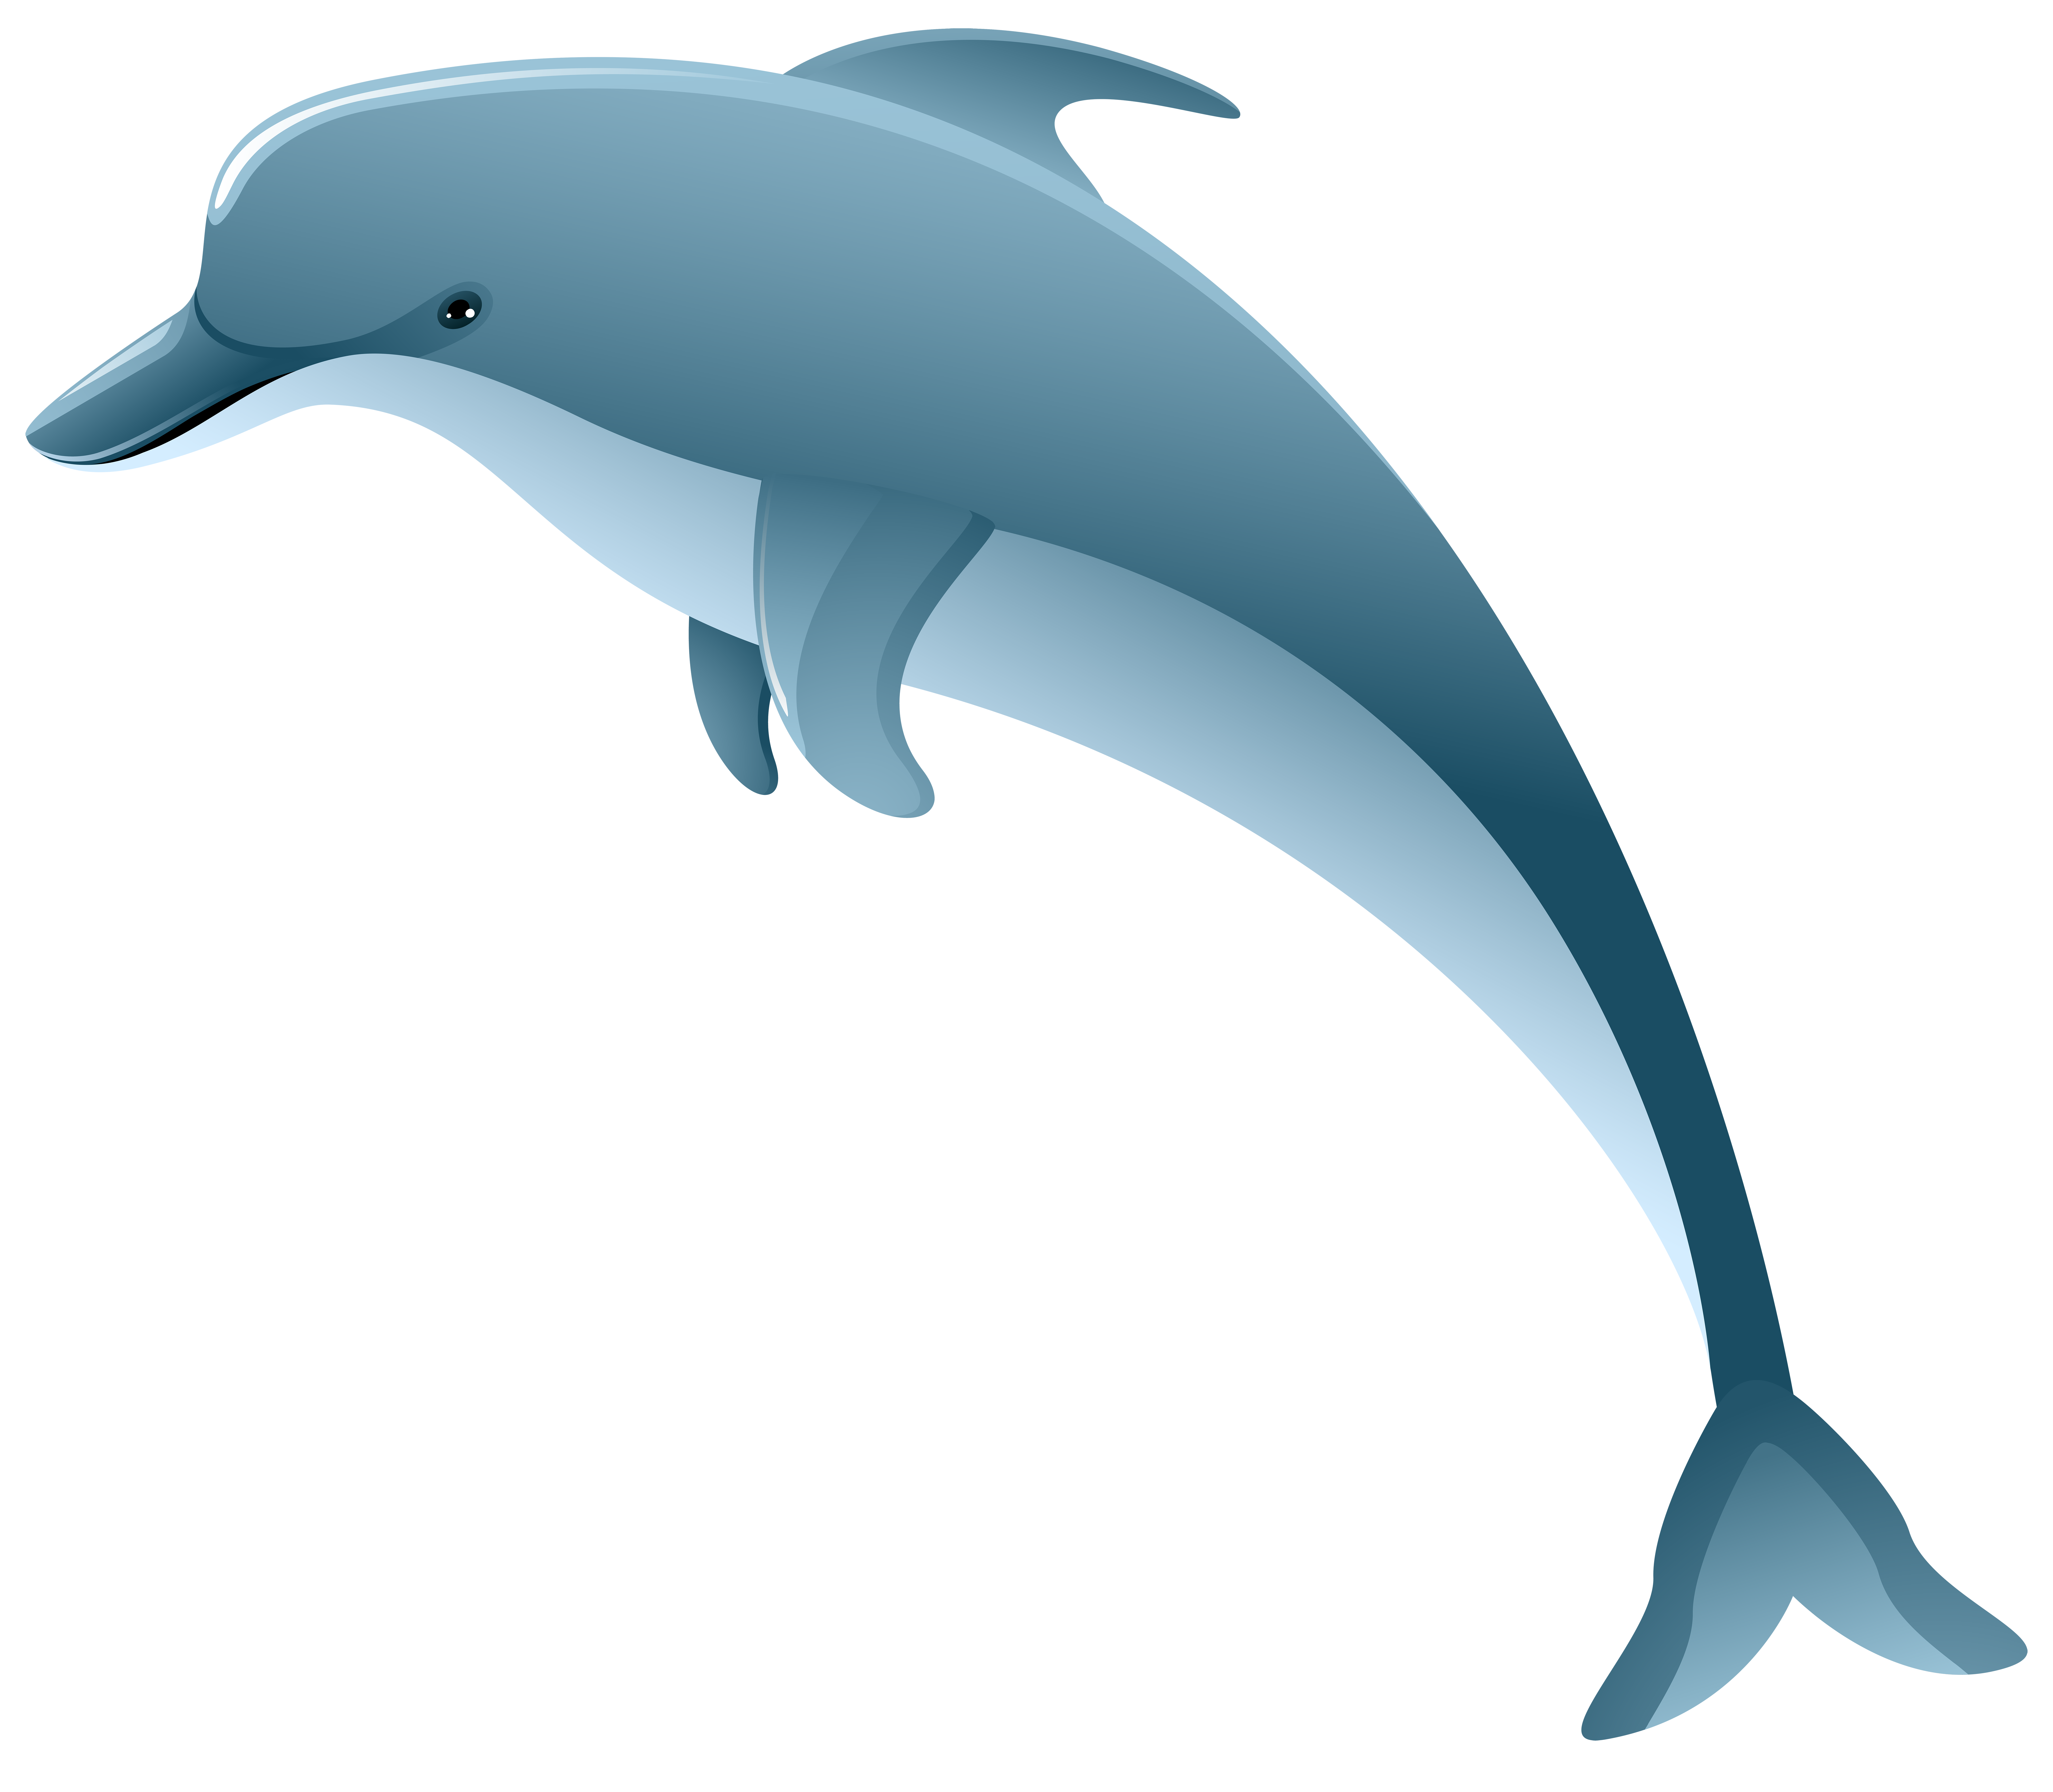 8000x6984 Dolphin Png Clip Art Imageu200b Gallery Yopriceville